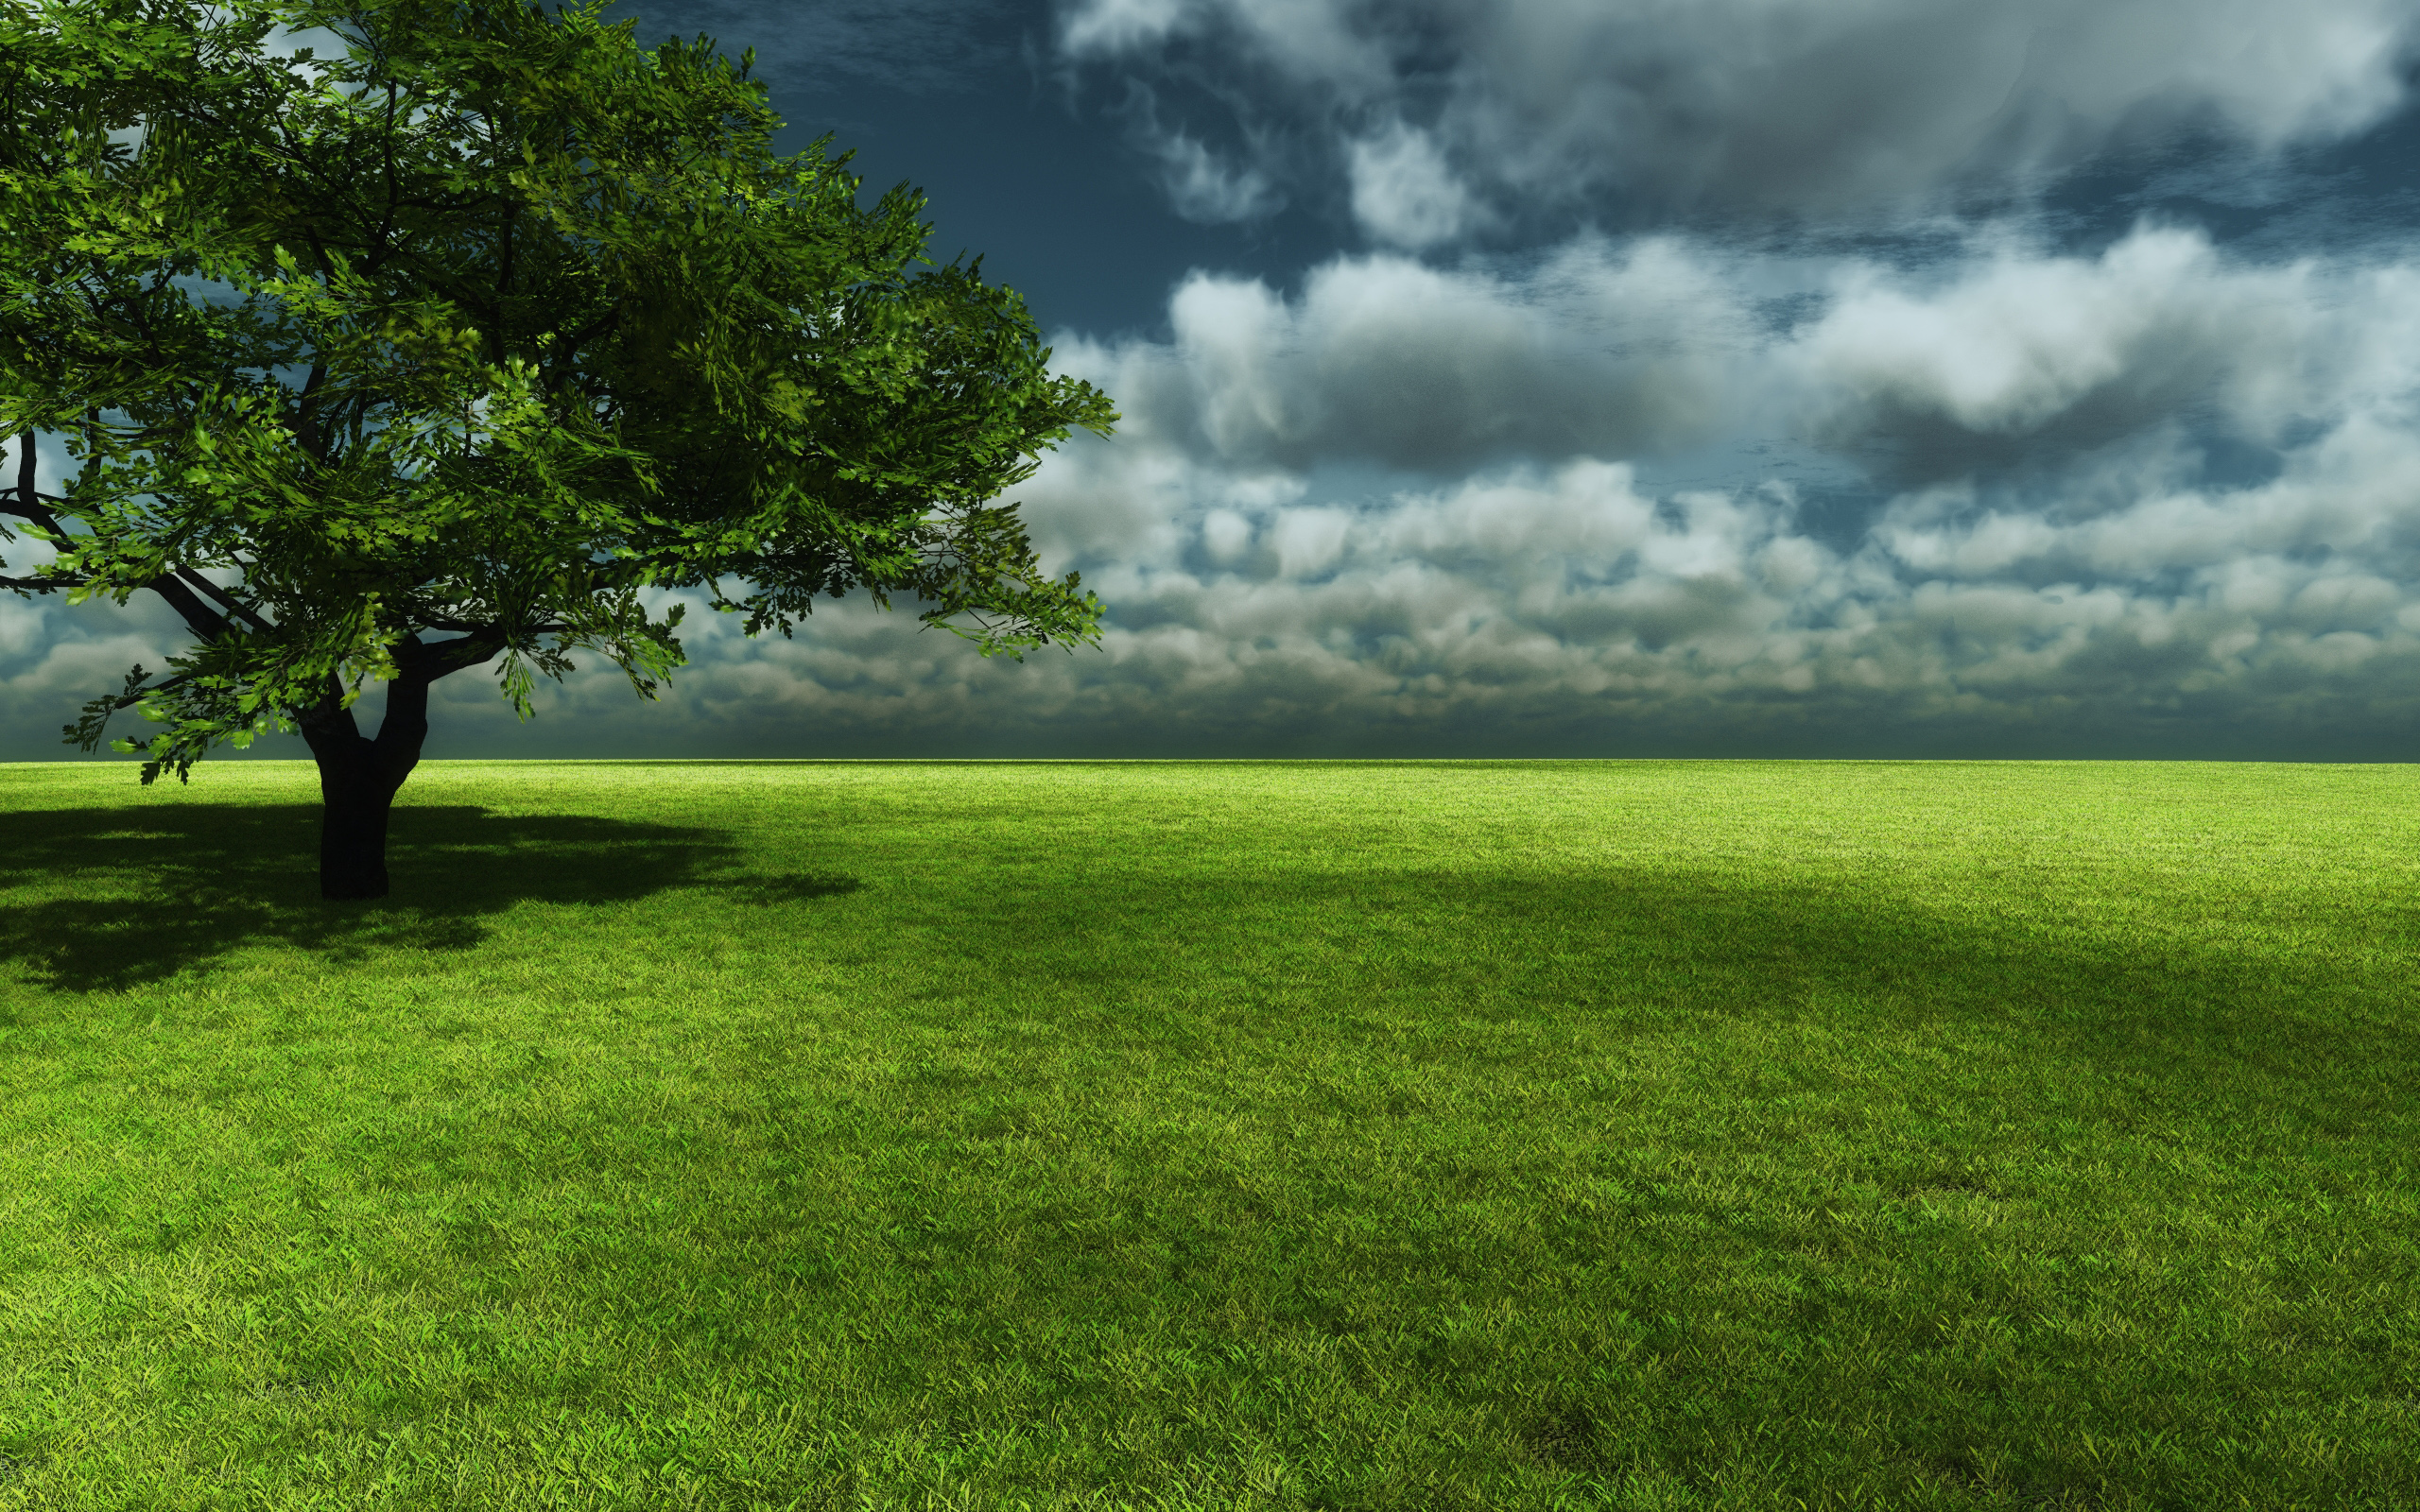 clouds-landscapes-nature-trees-garden-meadow-x-wallpaper-wp5006146